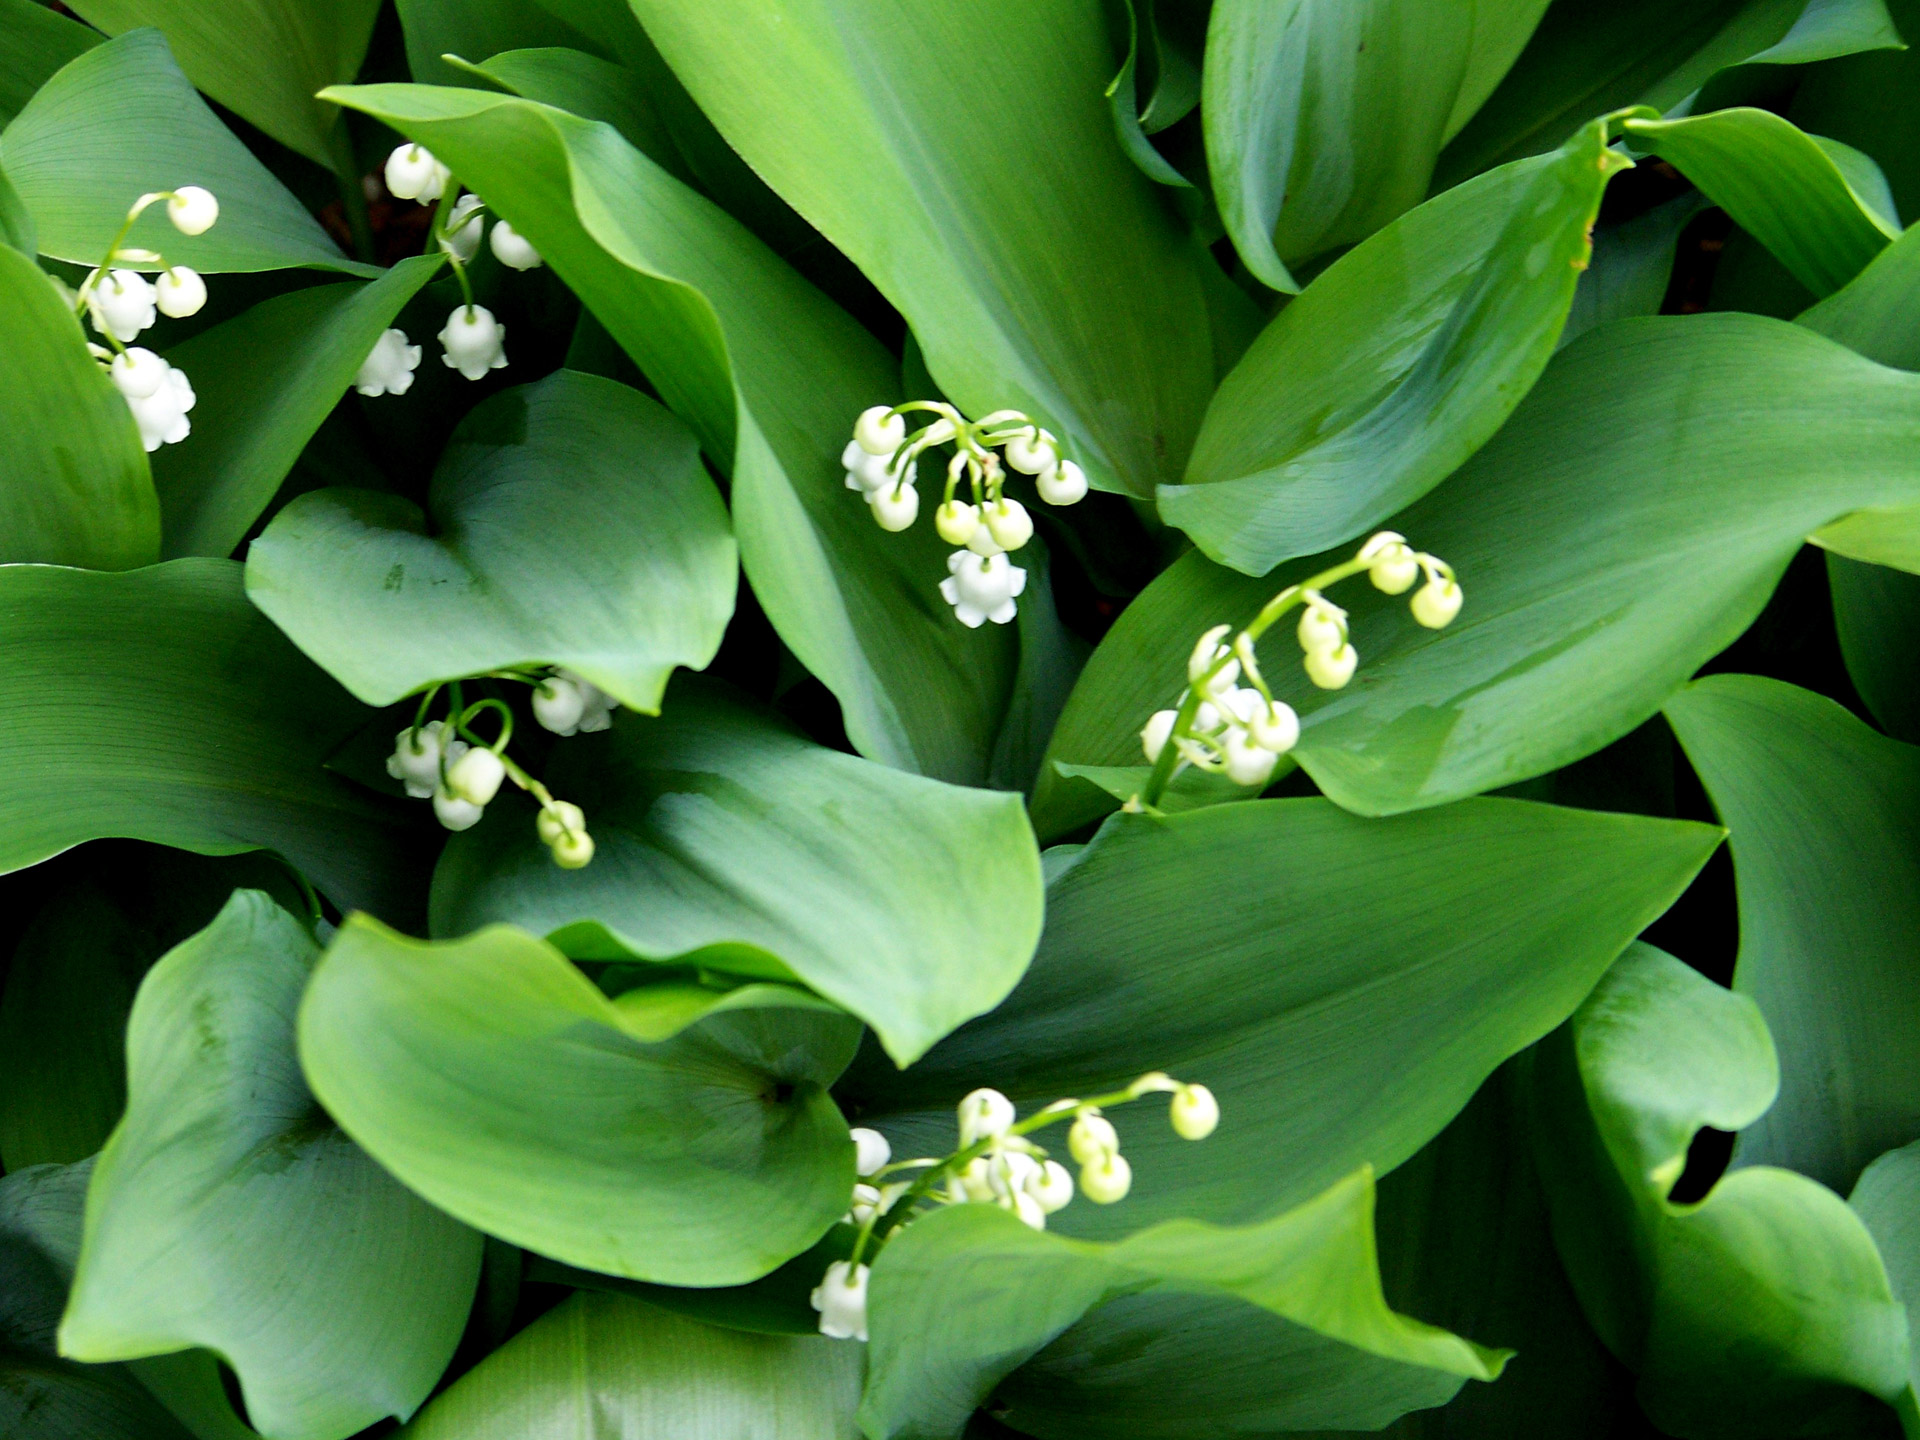 lilies-of-the-valley.jpg